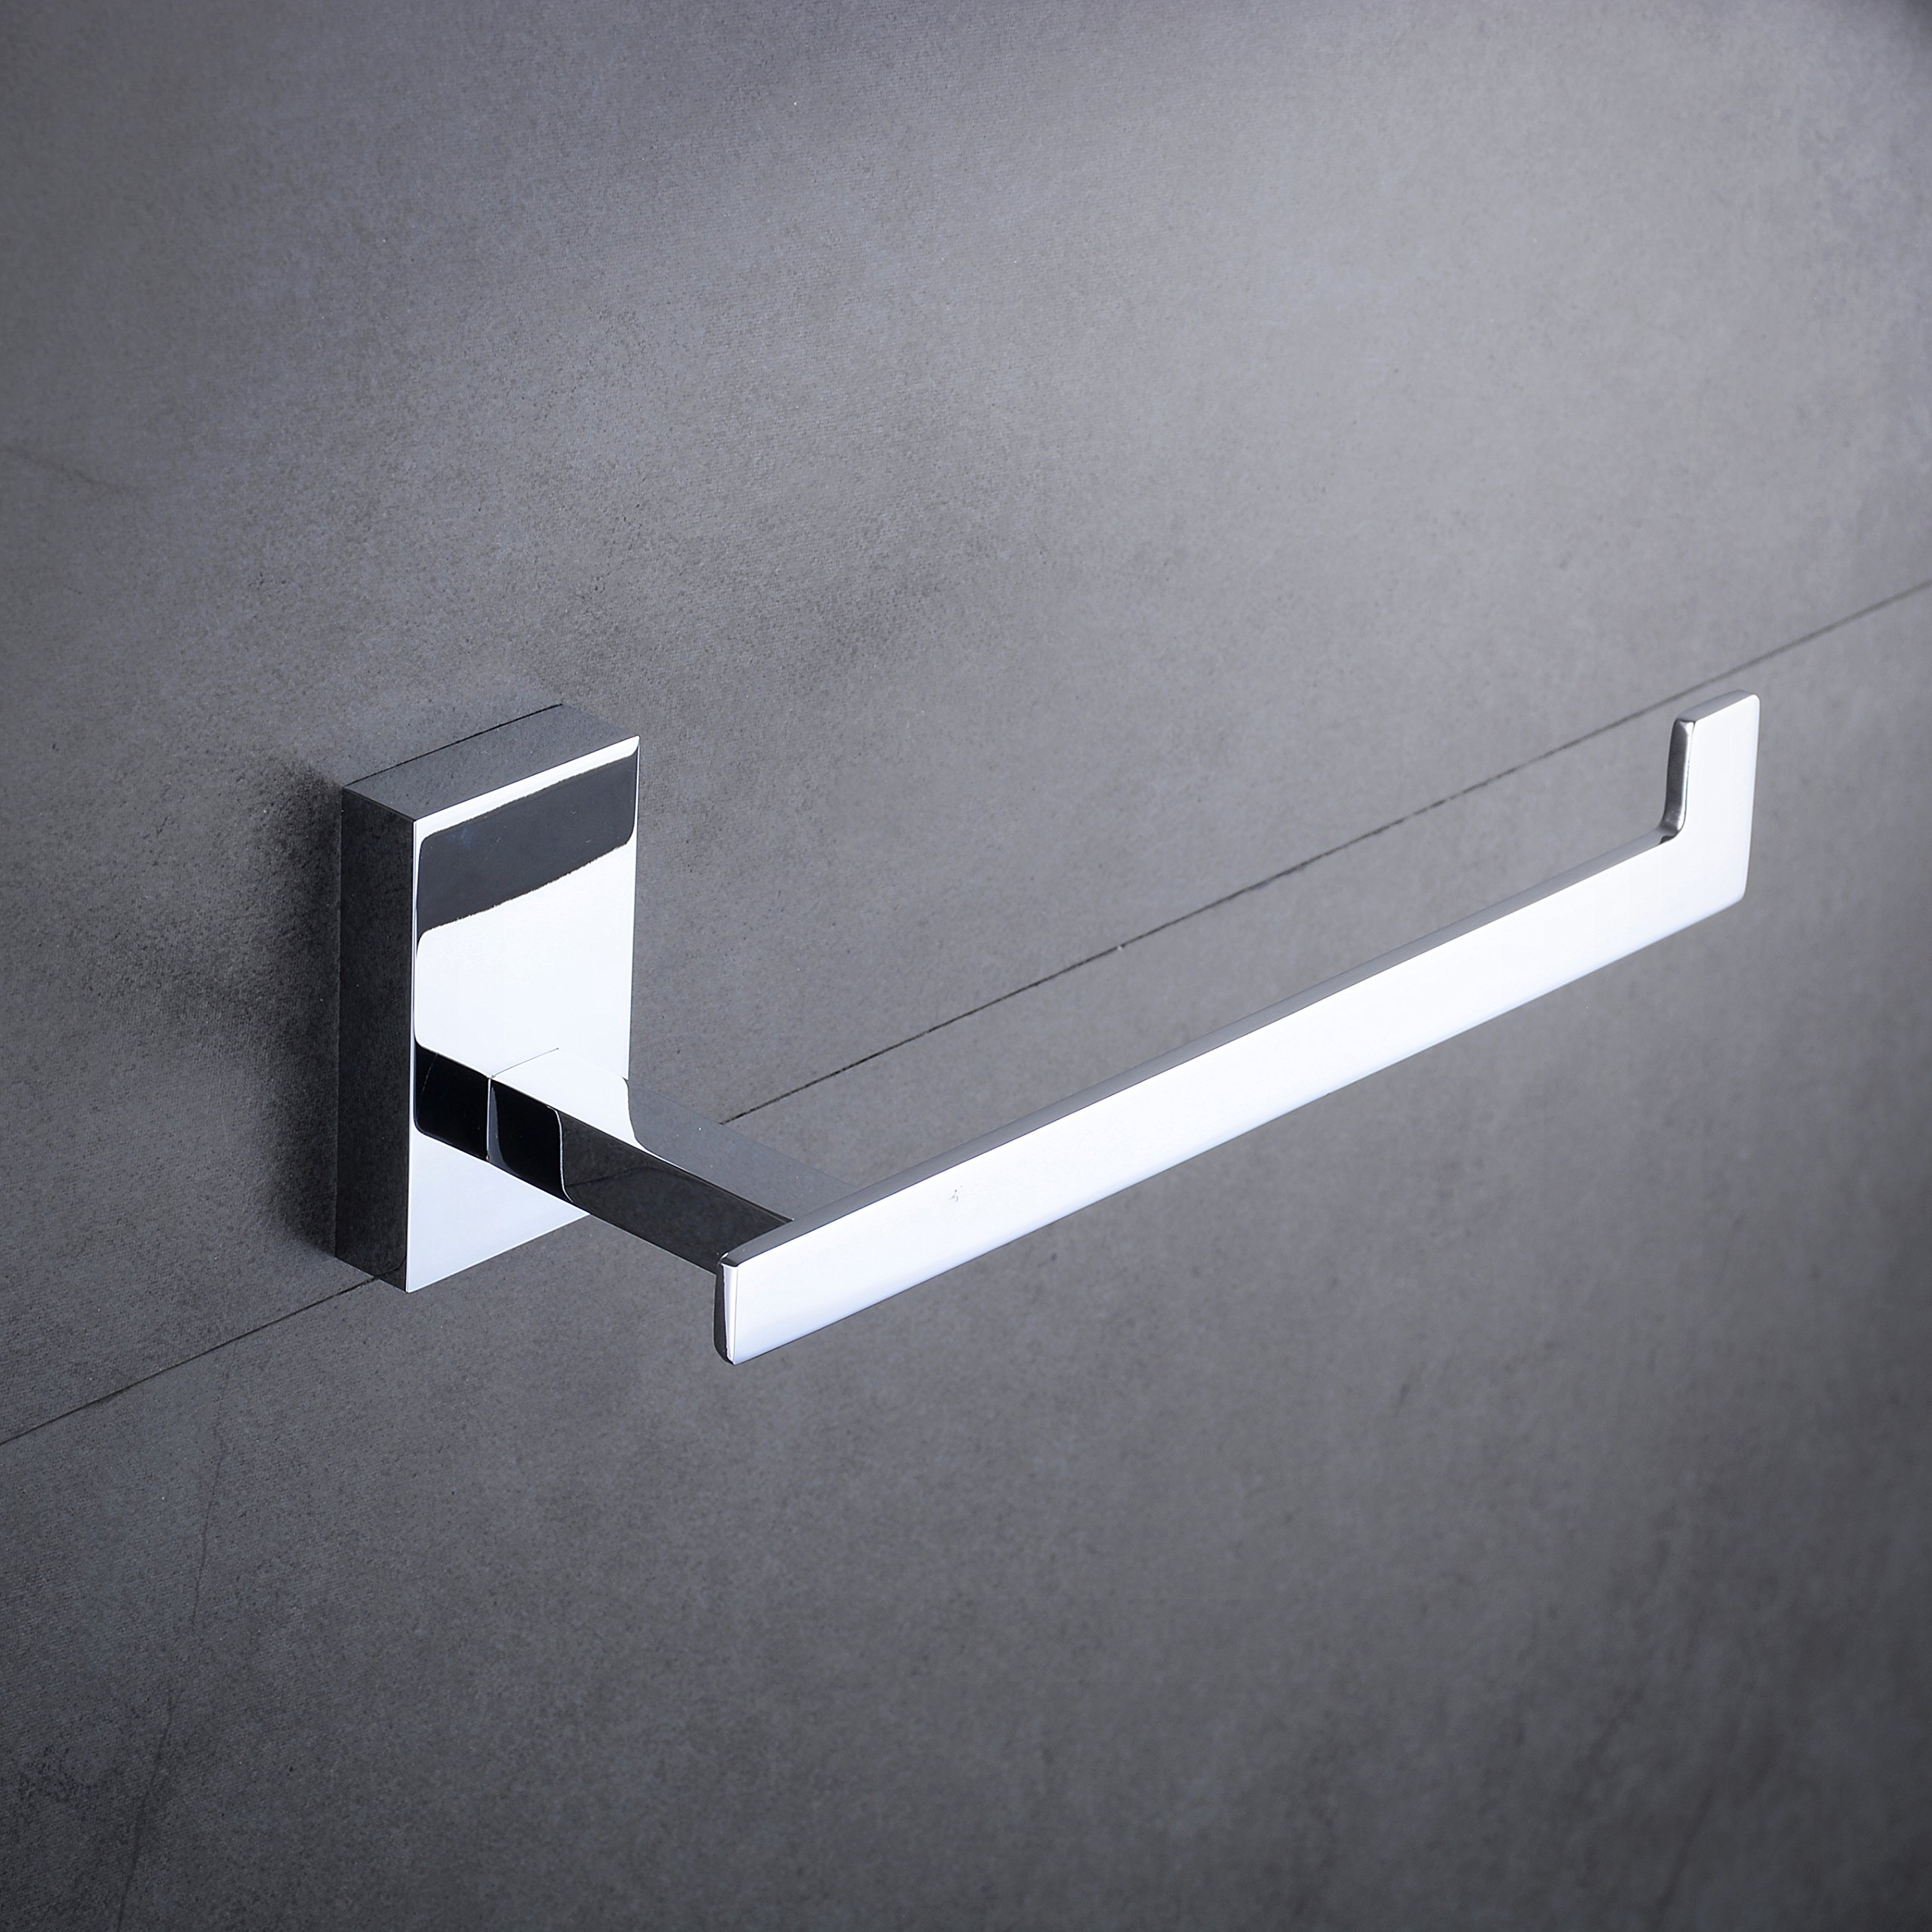 Hiendure Toilet Paper Holder and Dispenser, Wall Mounted Brass Tissue Roll Holder Polished Chrome with Sturdy Square Base